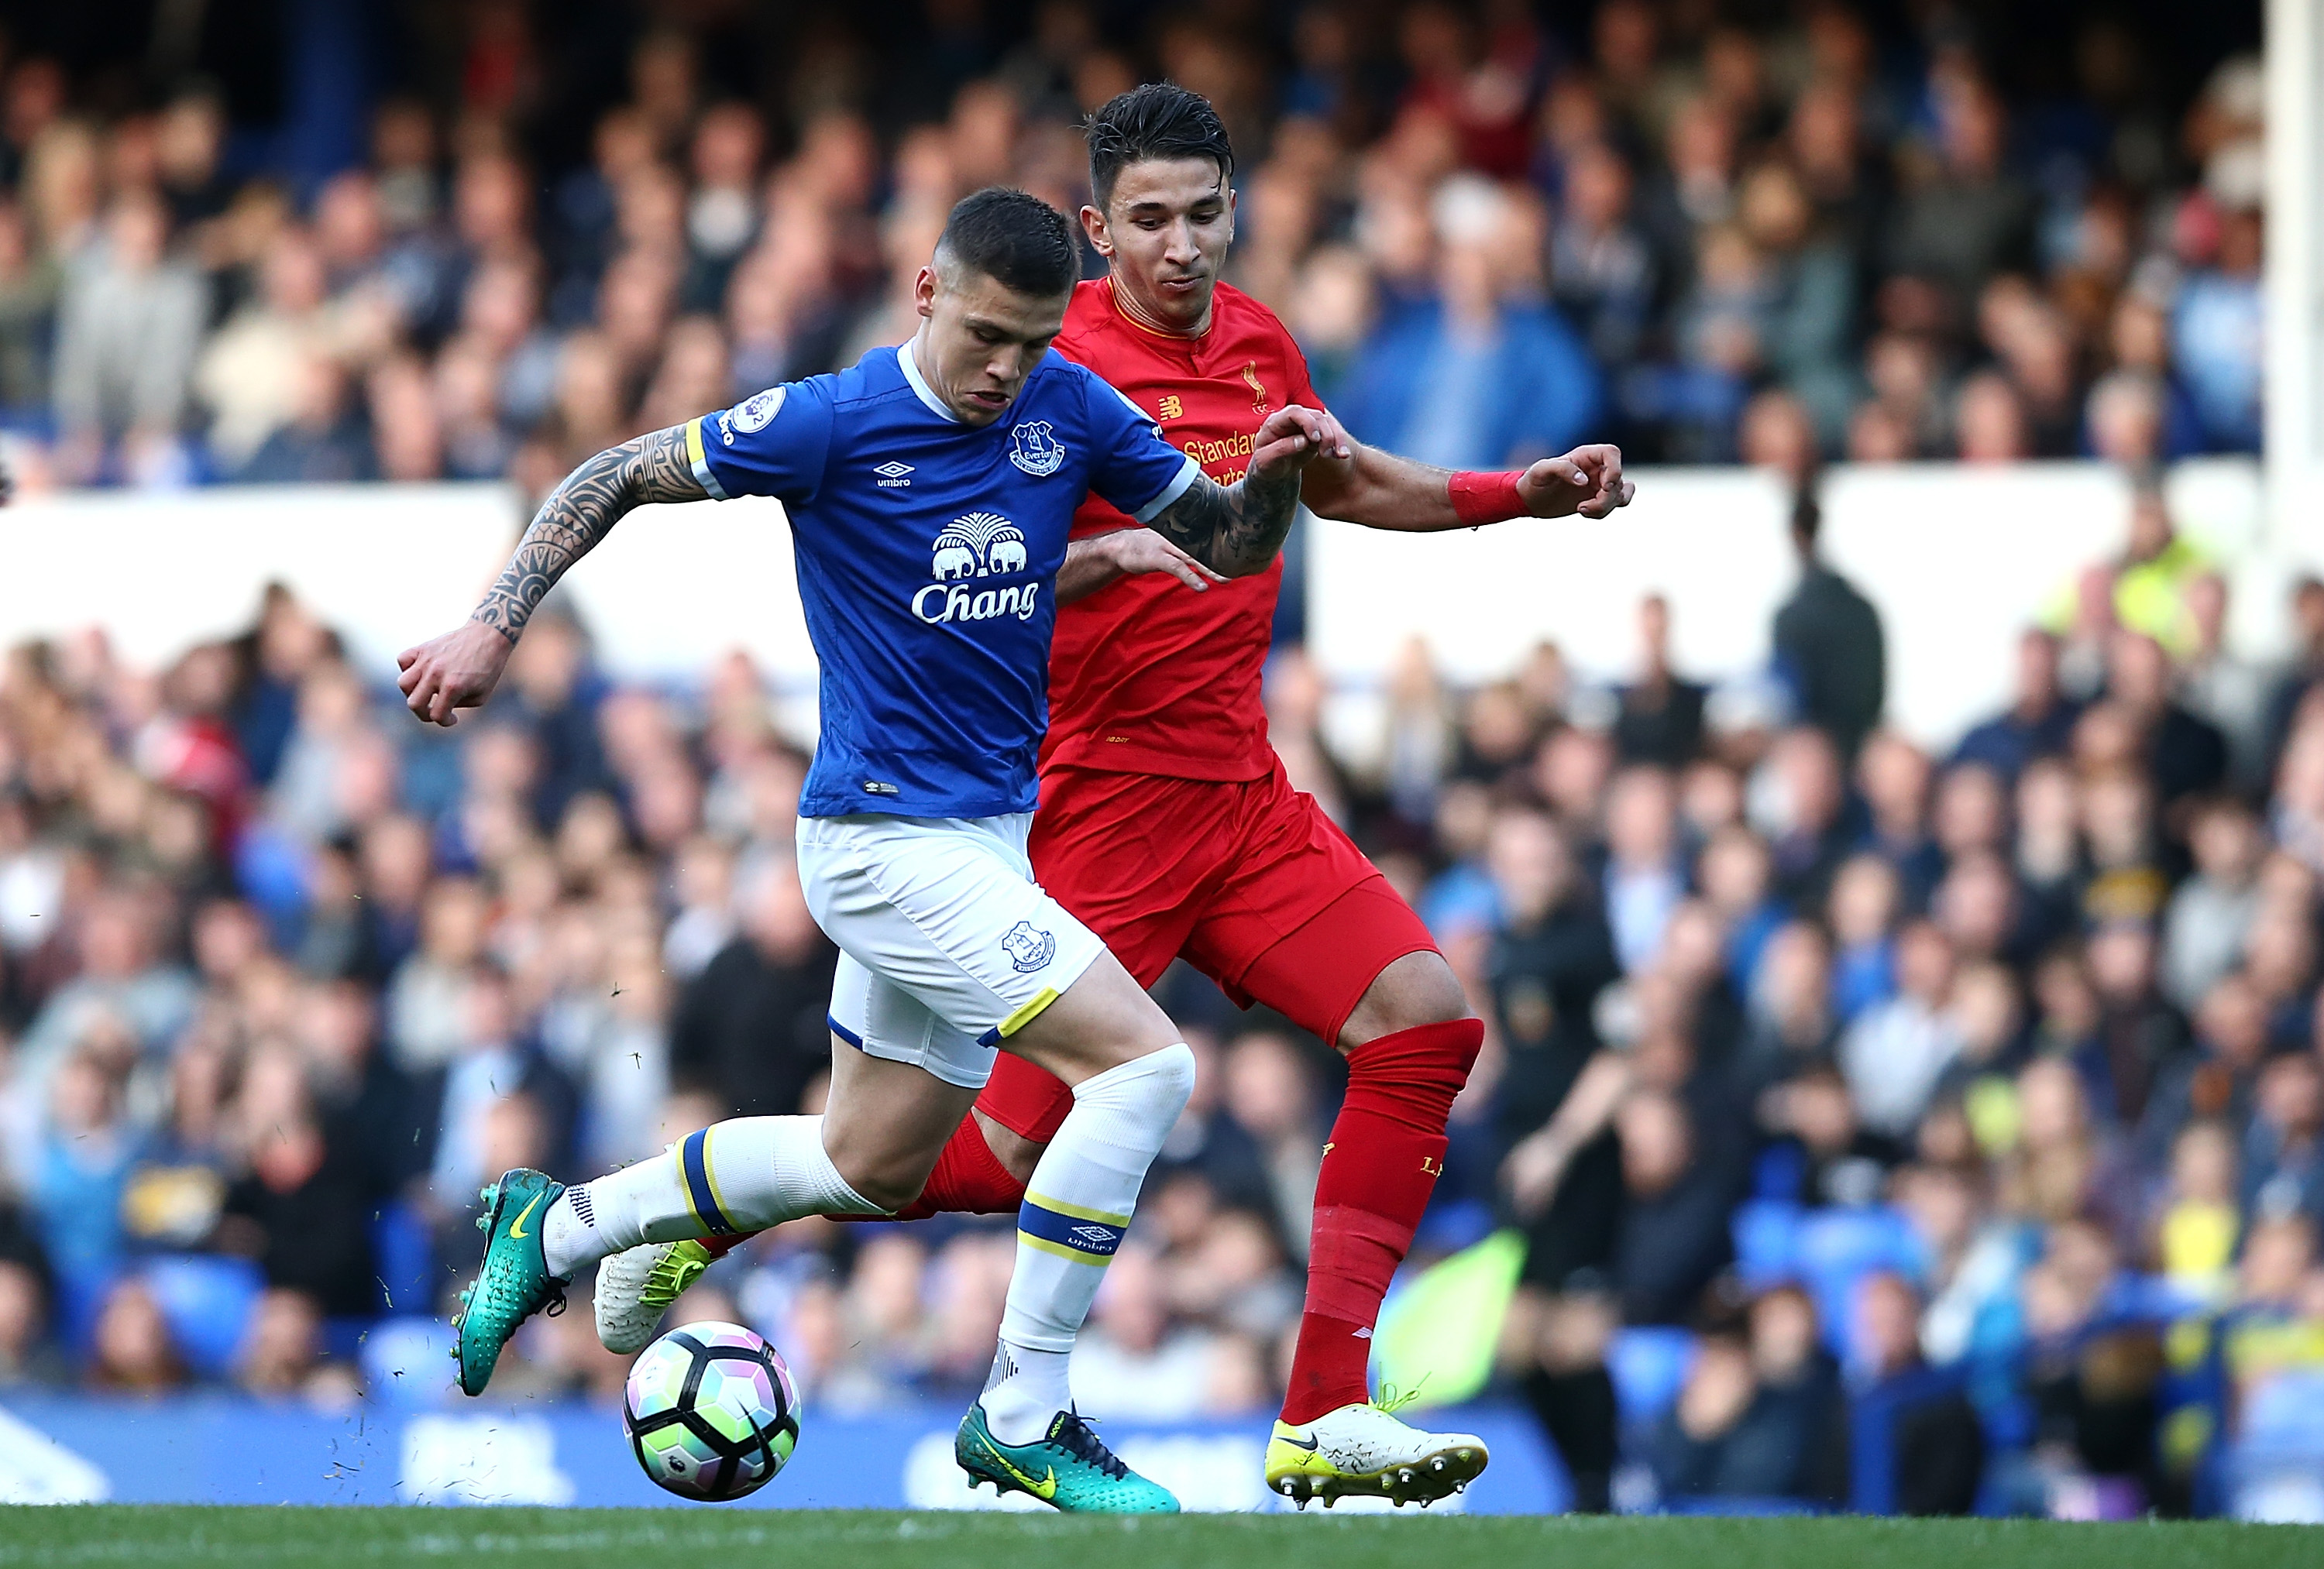 Everton's Ross Barkley to miss start of season after groin surgery